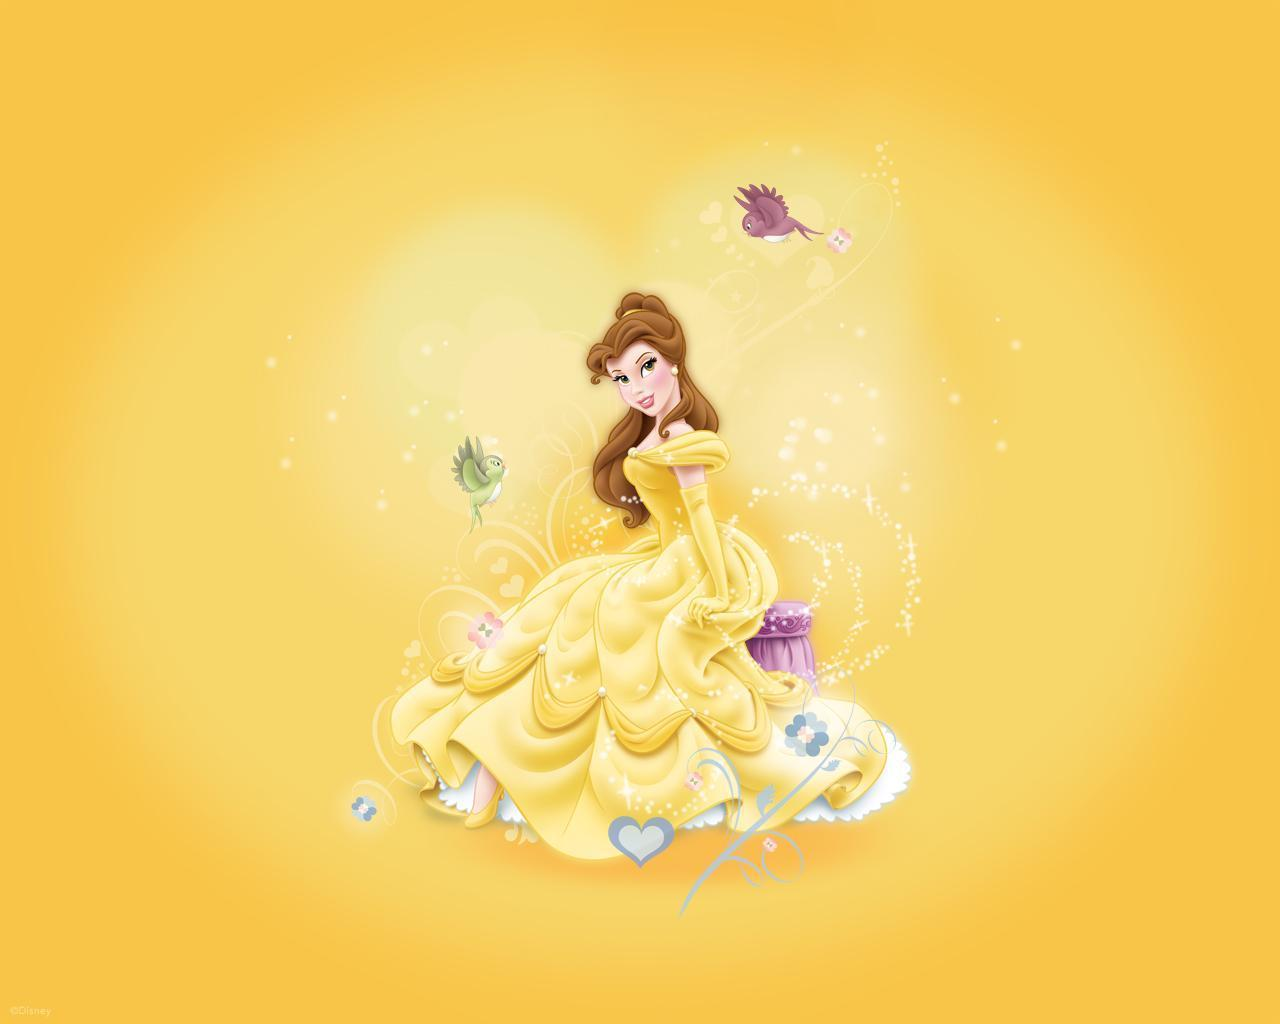 Belle Images Princess Belle Hd Wallpaper And Background Photos 7737455